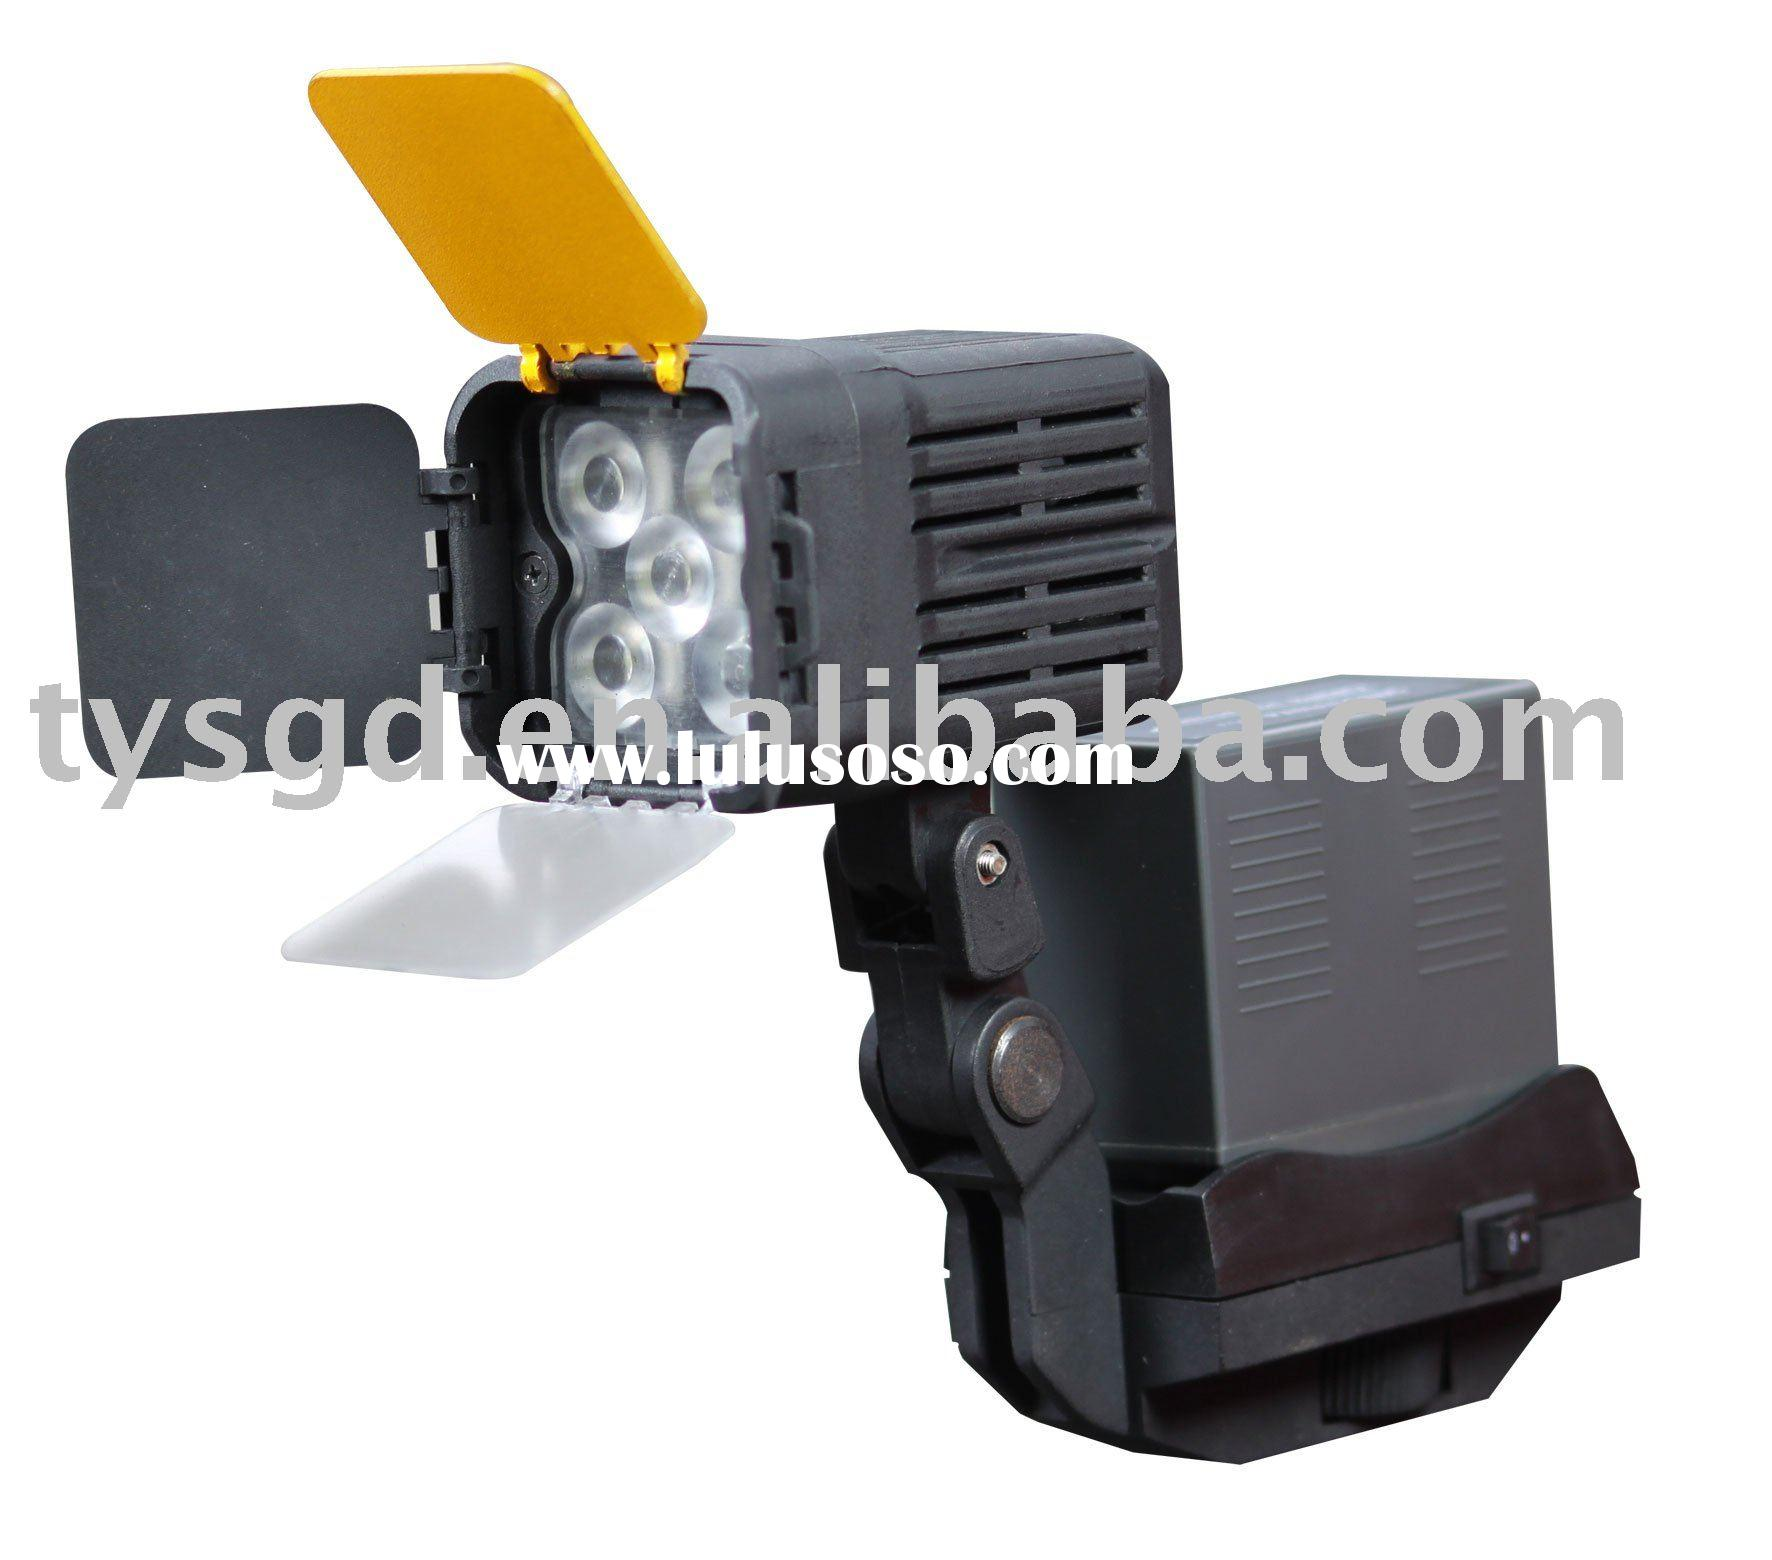 LED camera light ,led news light ,LED photography light